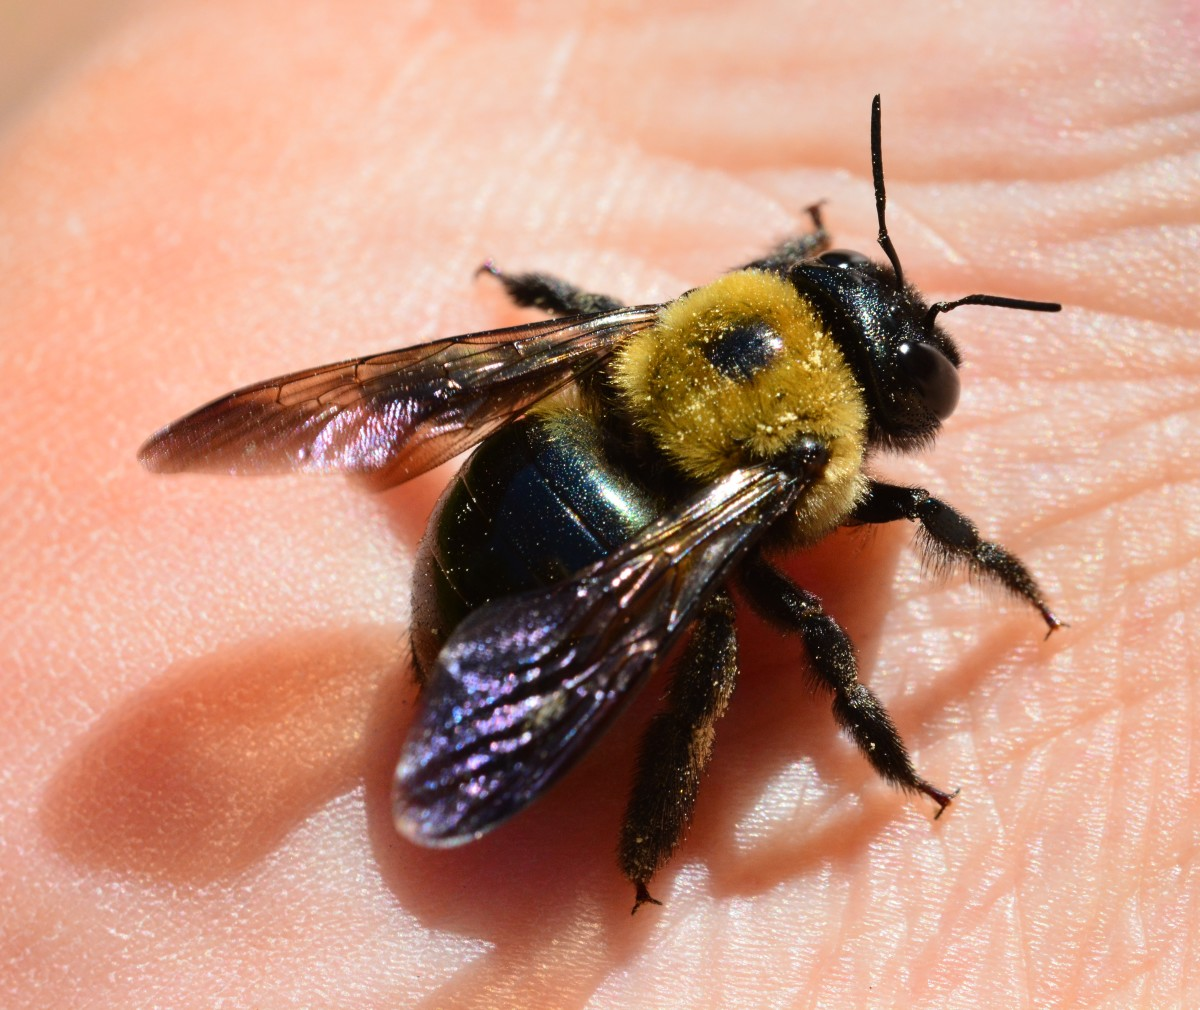 Bees, Pollination, and Habitat Loss Owlcation